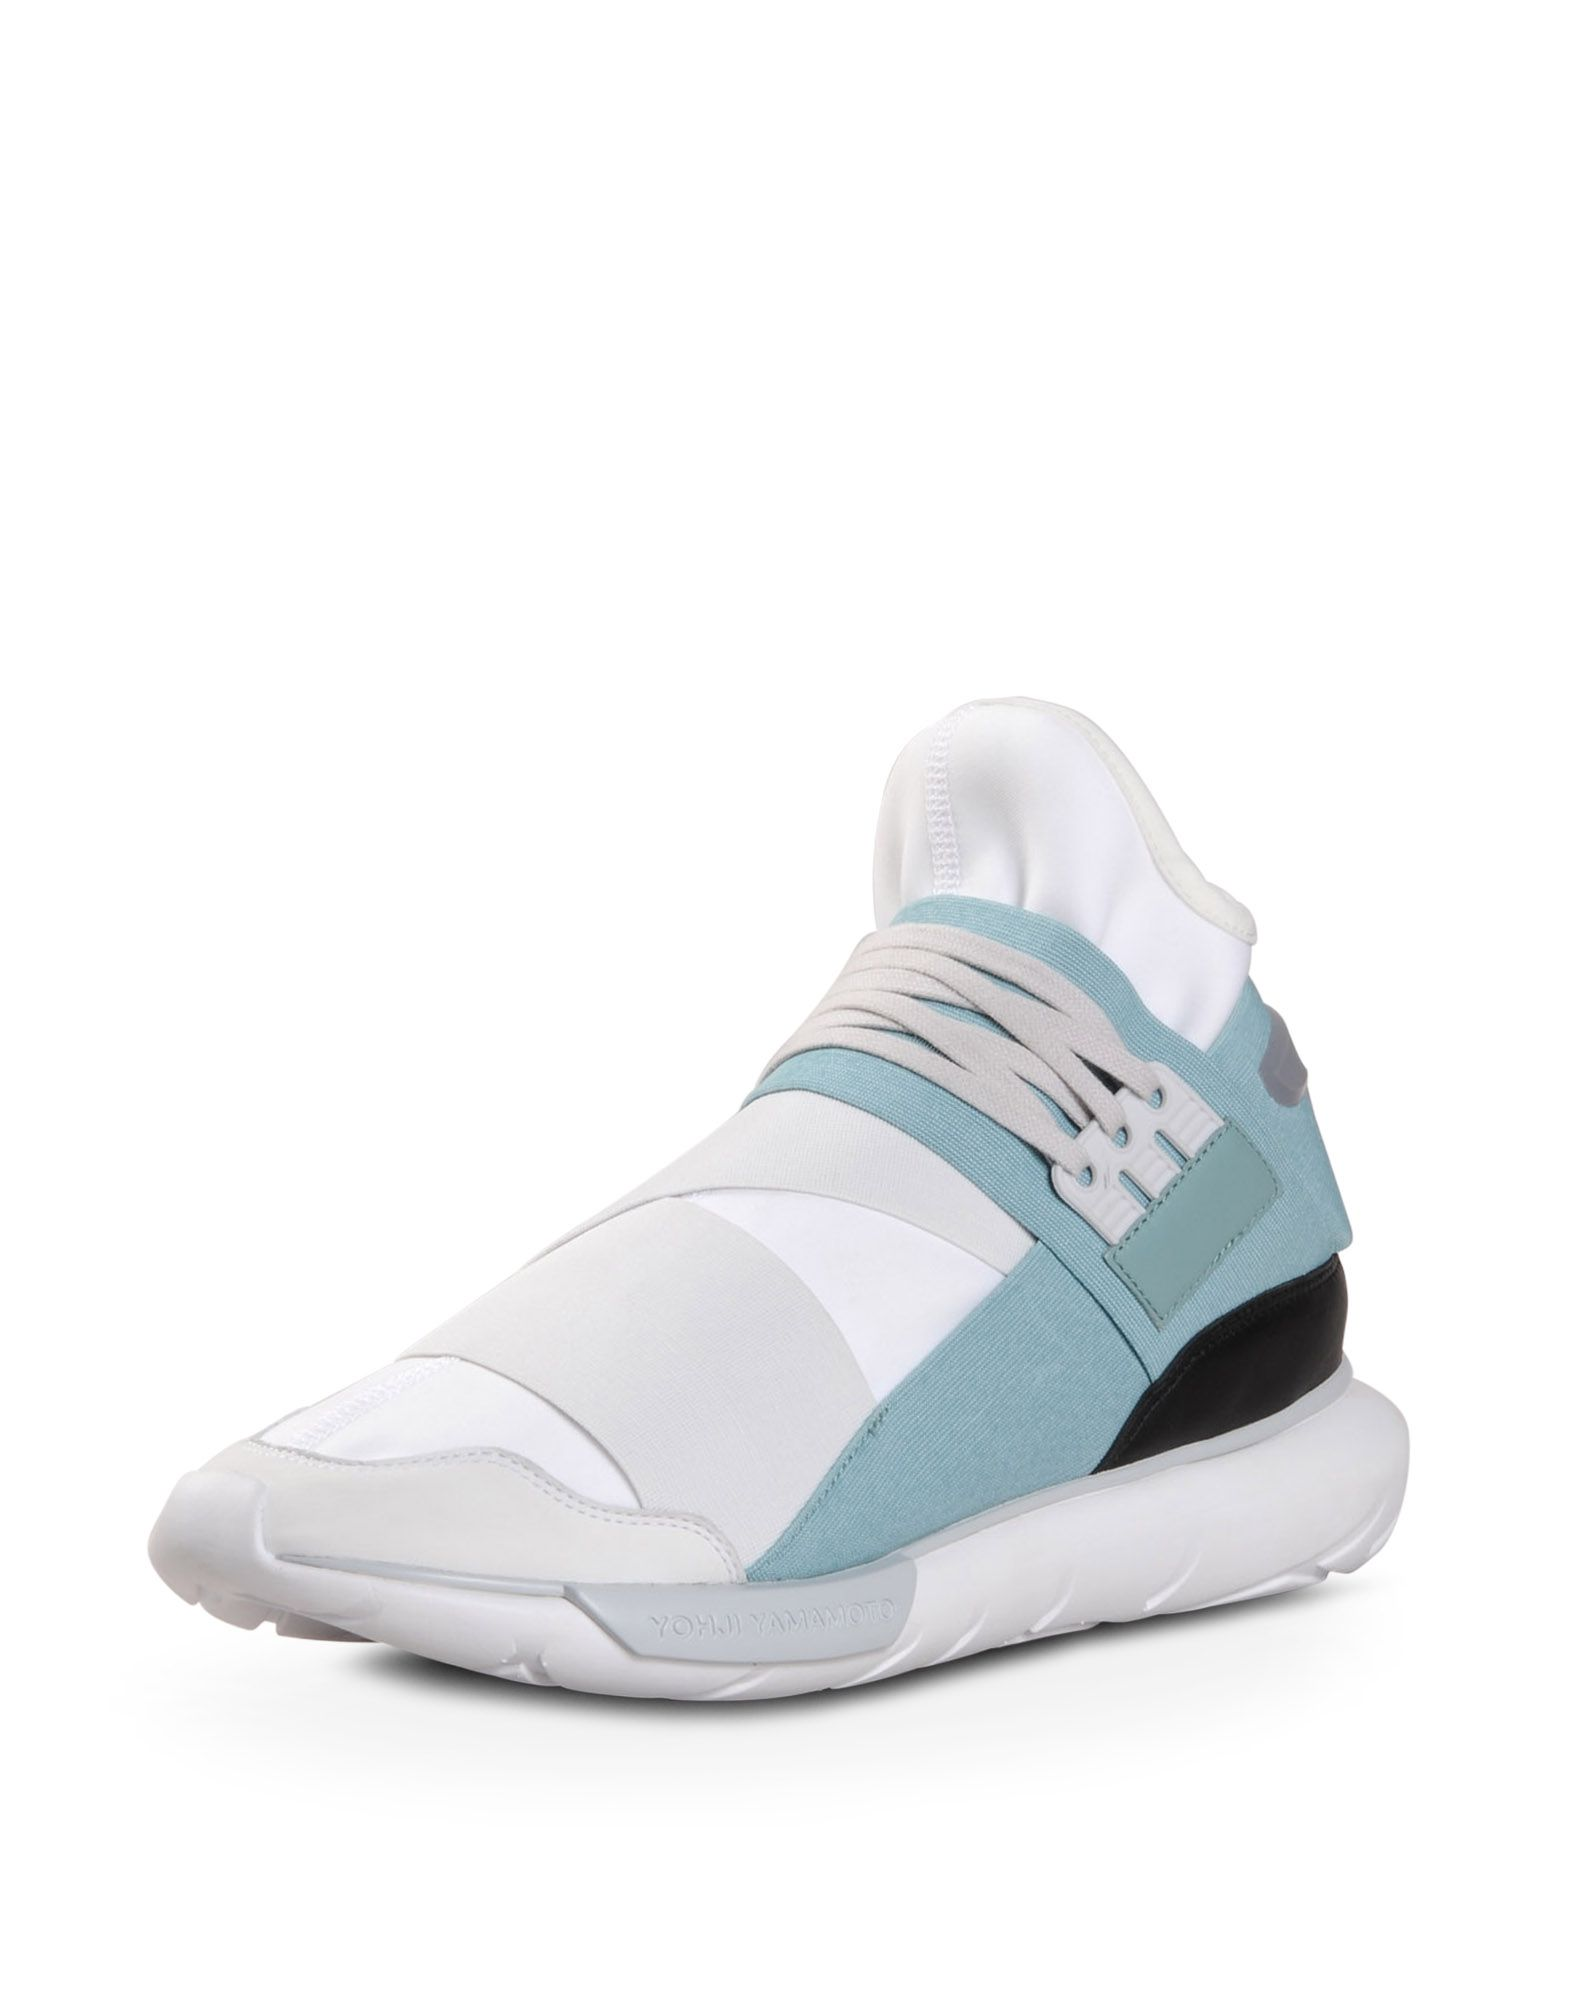 To Buy Y-3 Qasa High Sneakers Lowest Price Online Recommend Online With Credit Card Cheap Price hYWRdl6